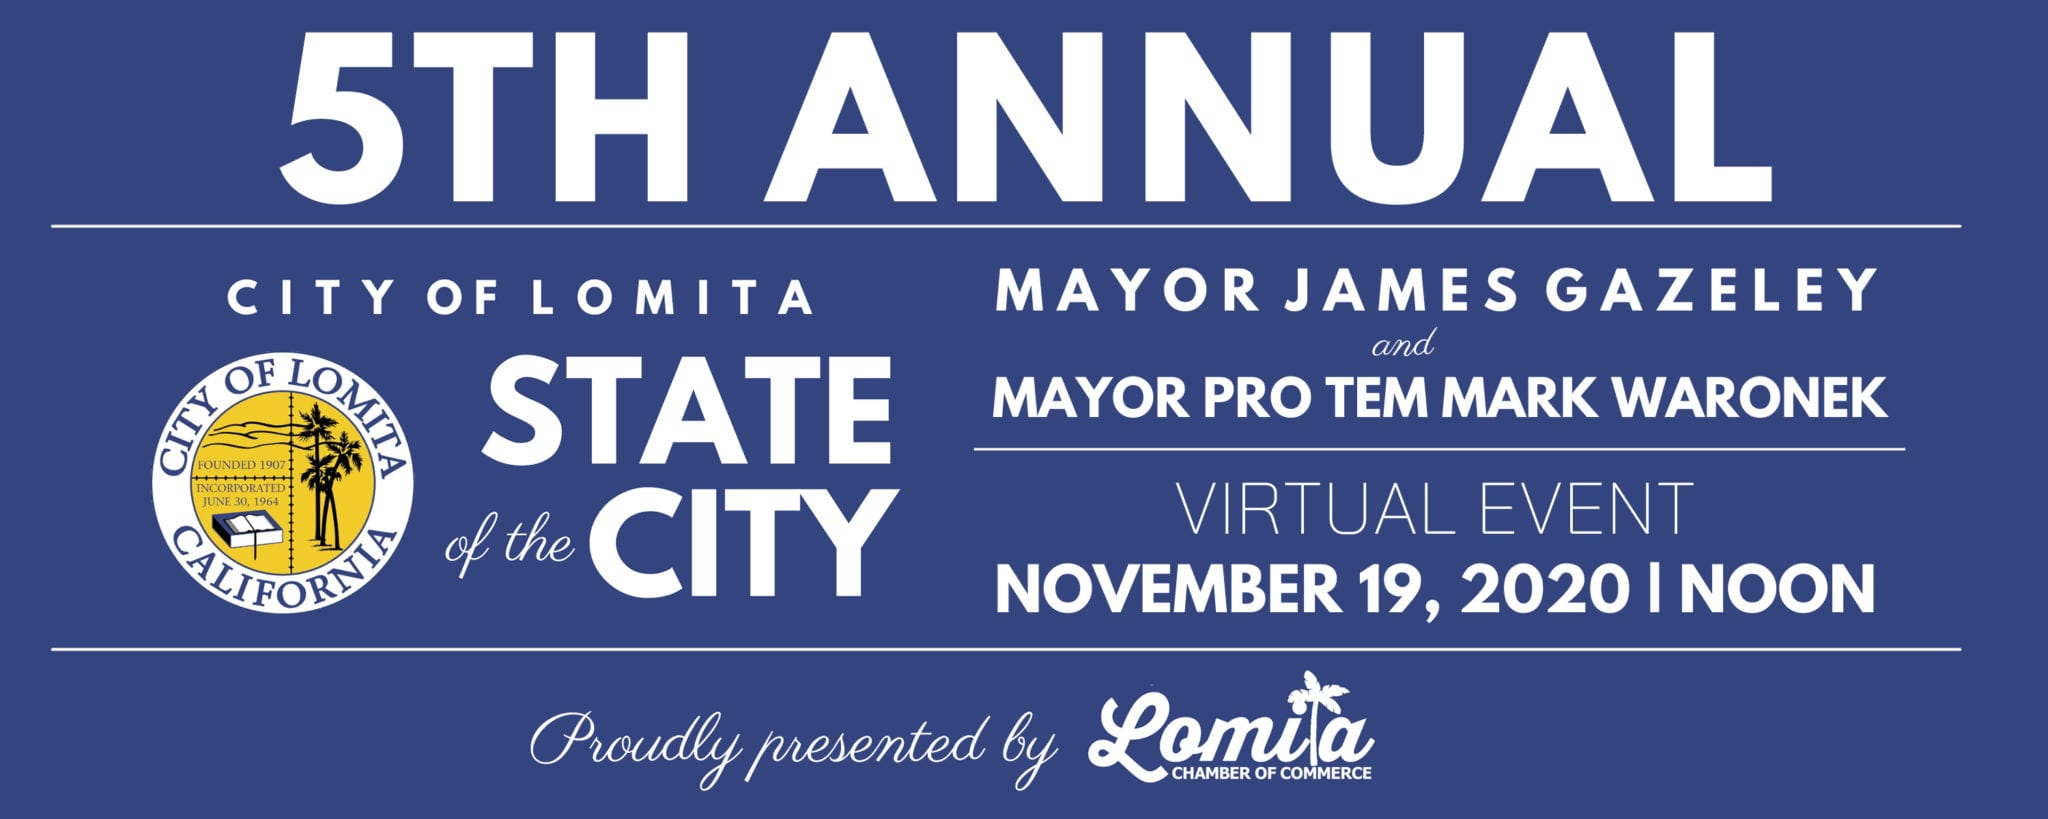 5th Annual State of the City of Lomita